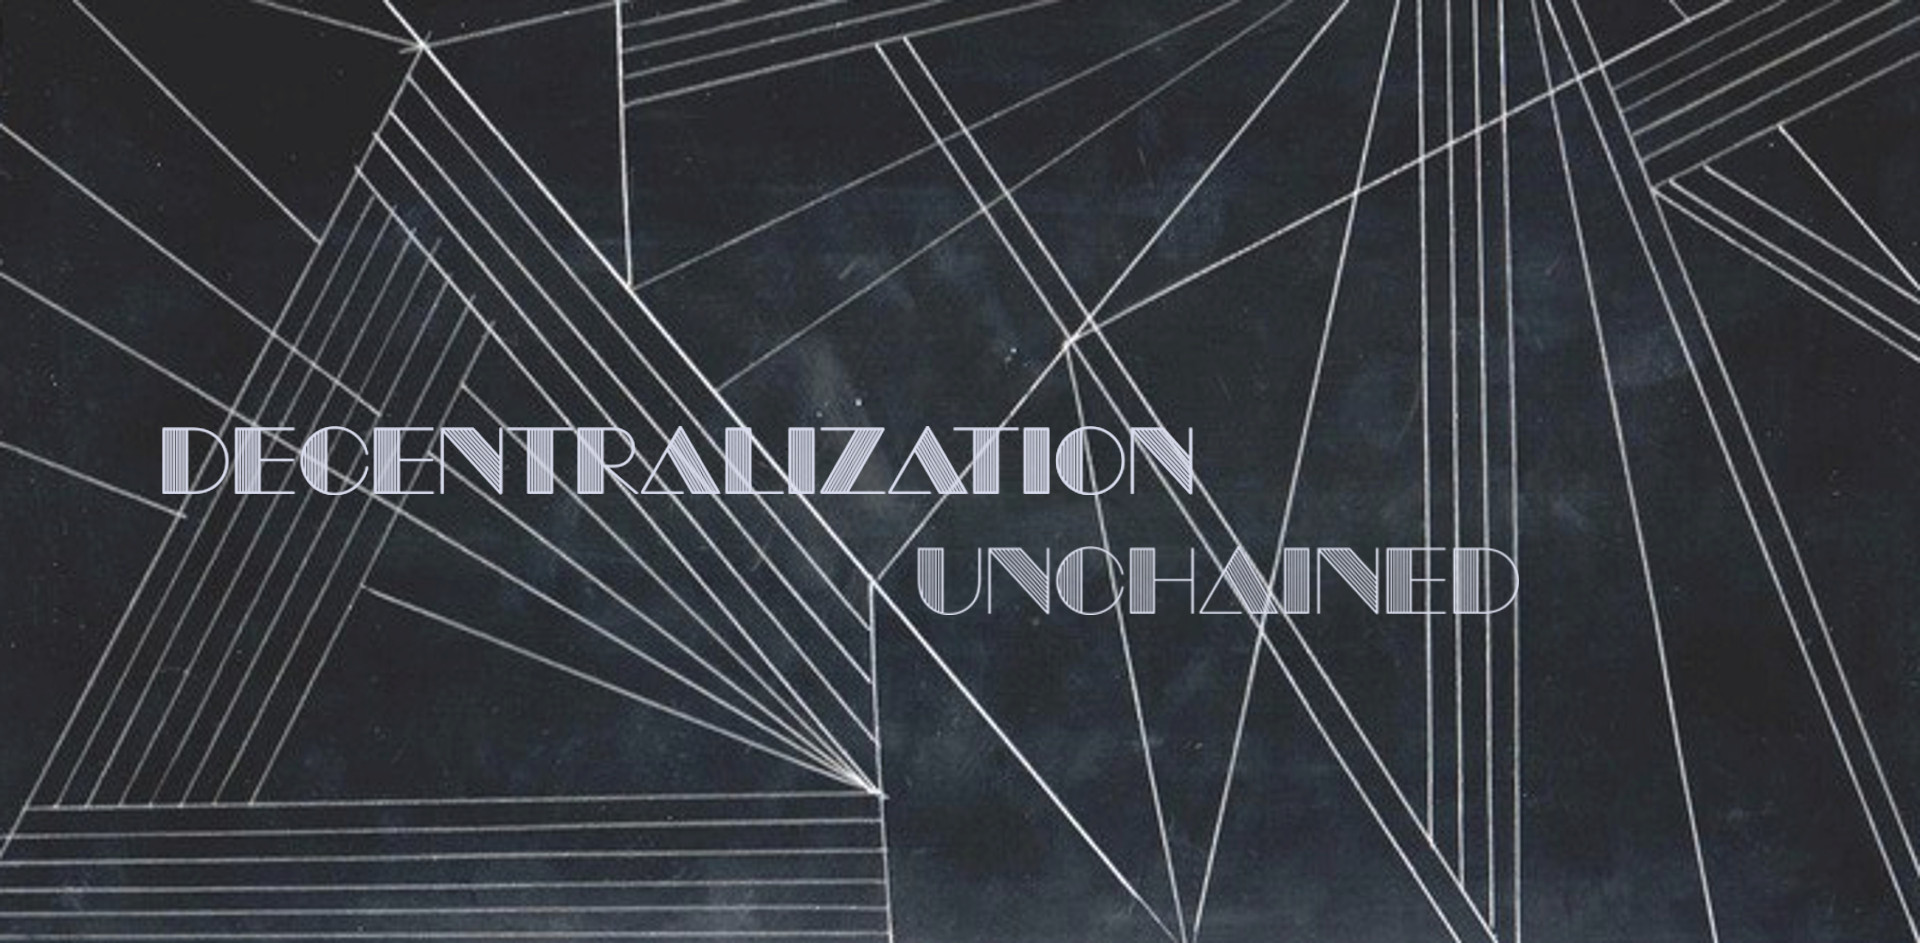 Decentralization Unchained logo